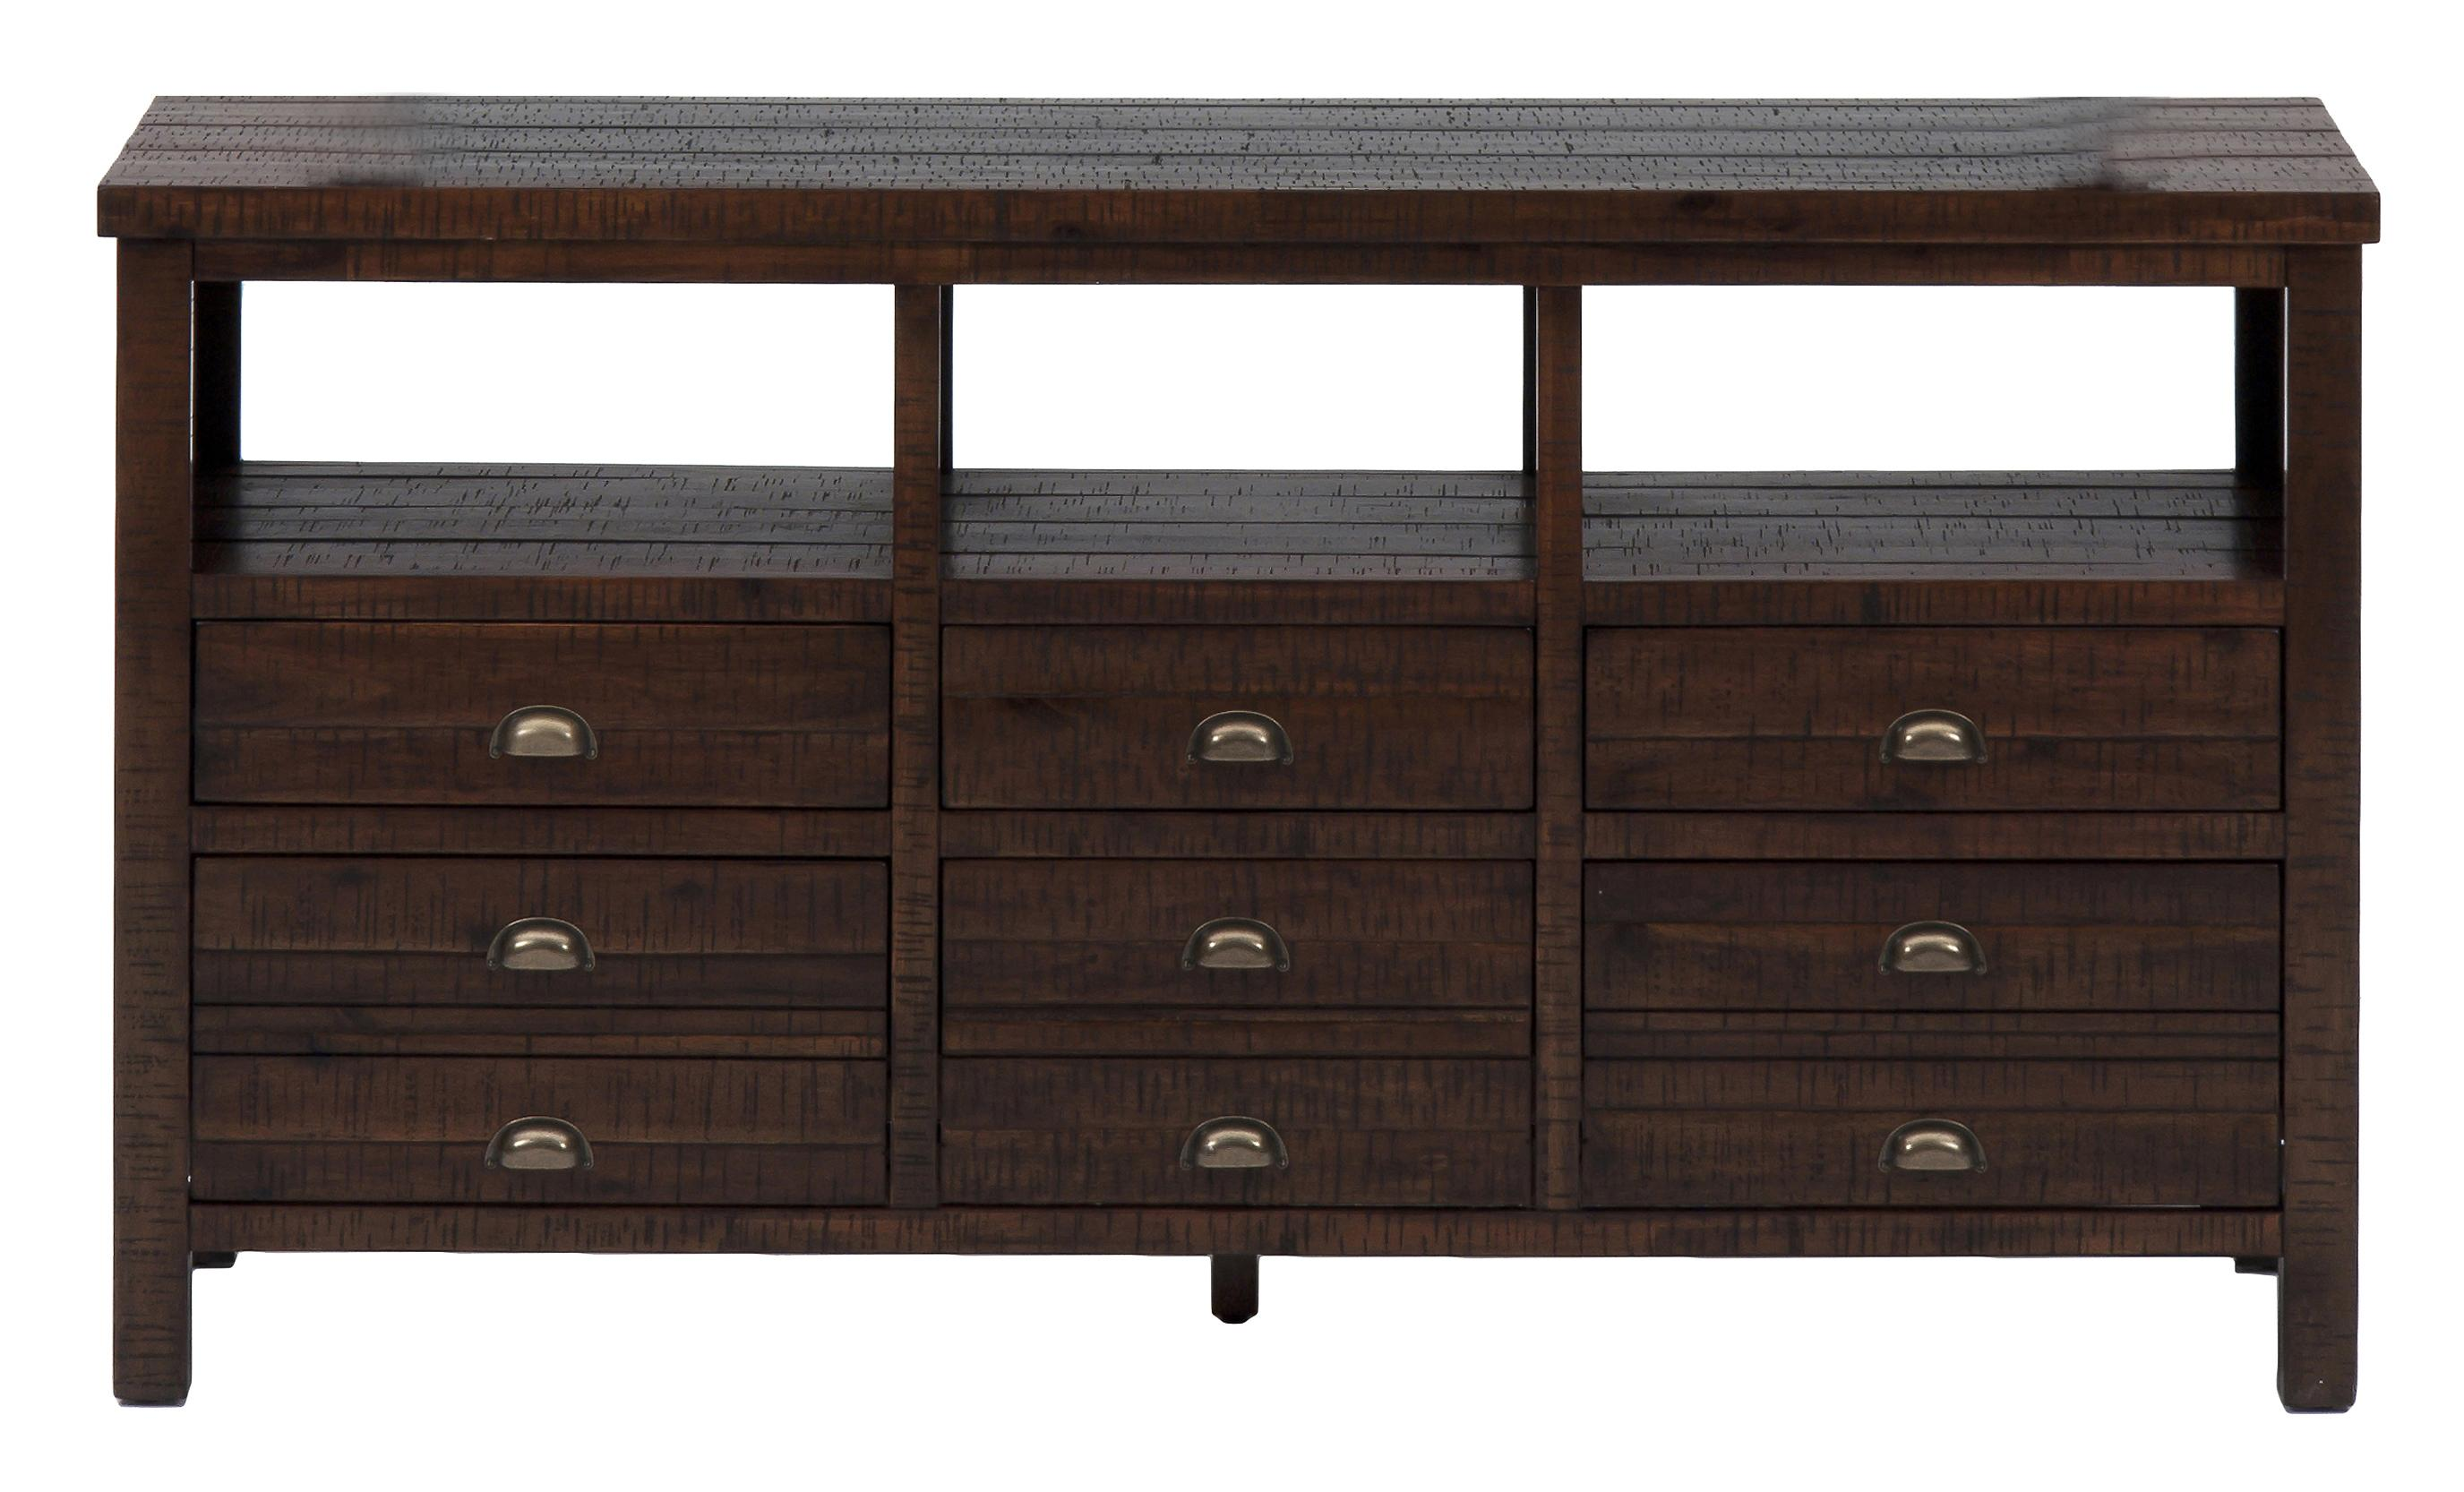 Jofran urban lodge brown 60 console with six drawers for for Bedroom furniture 30144